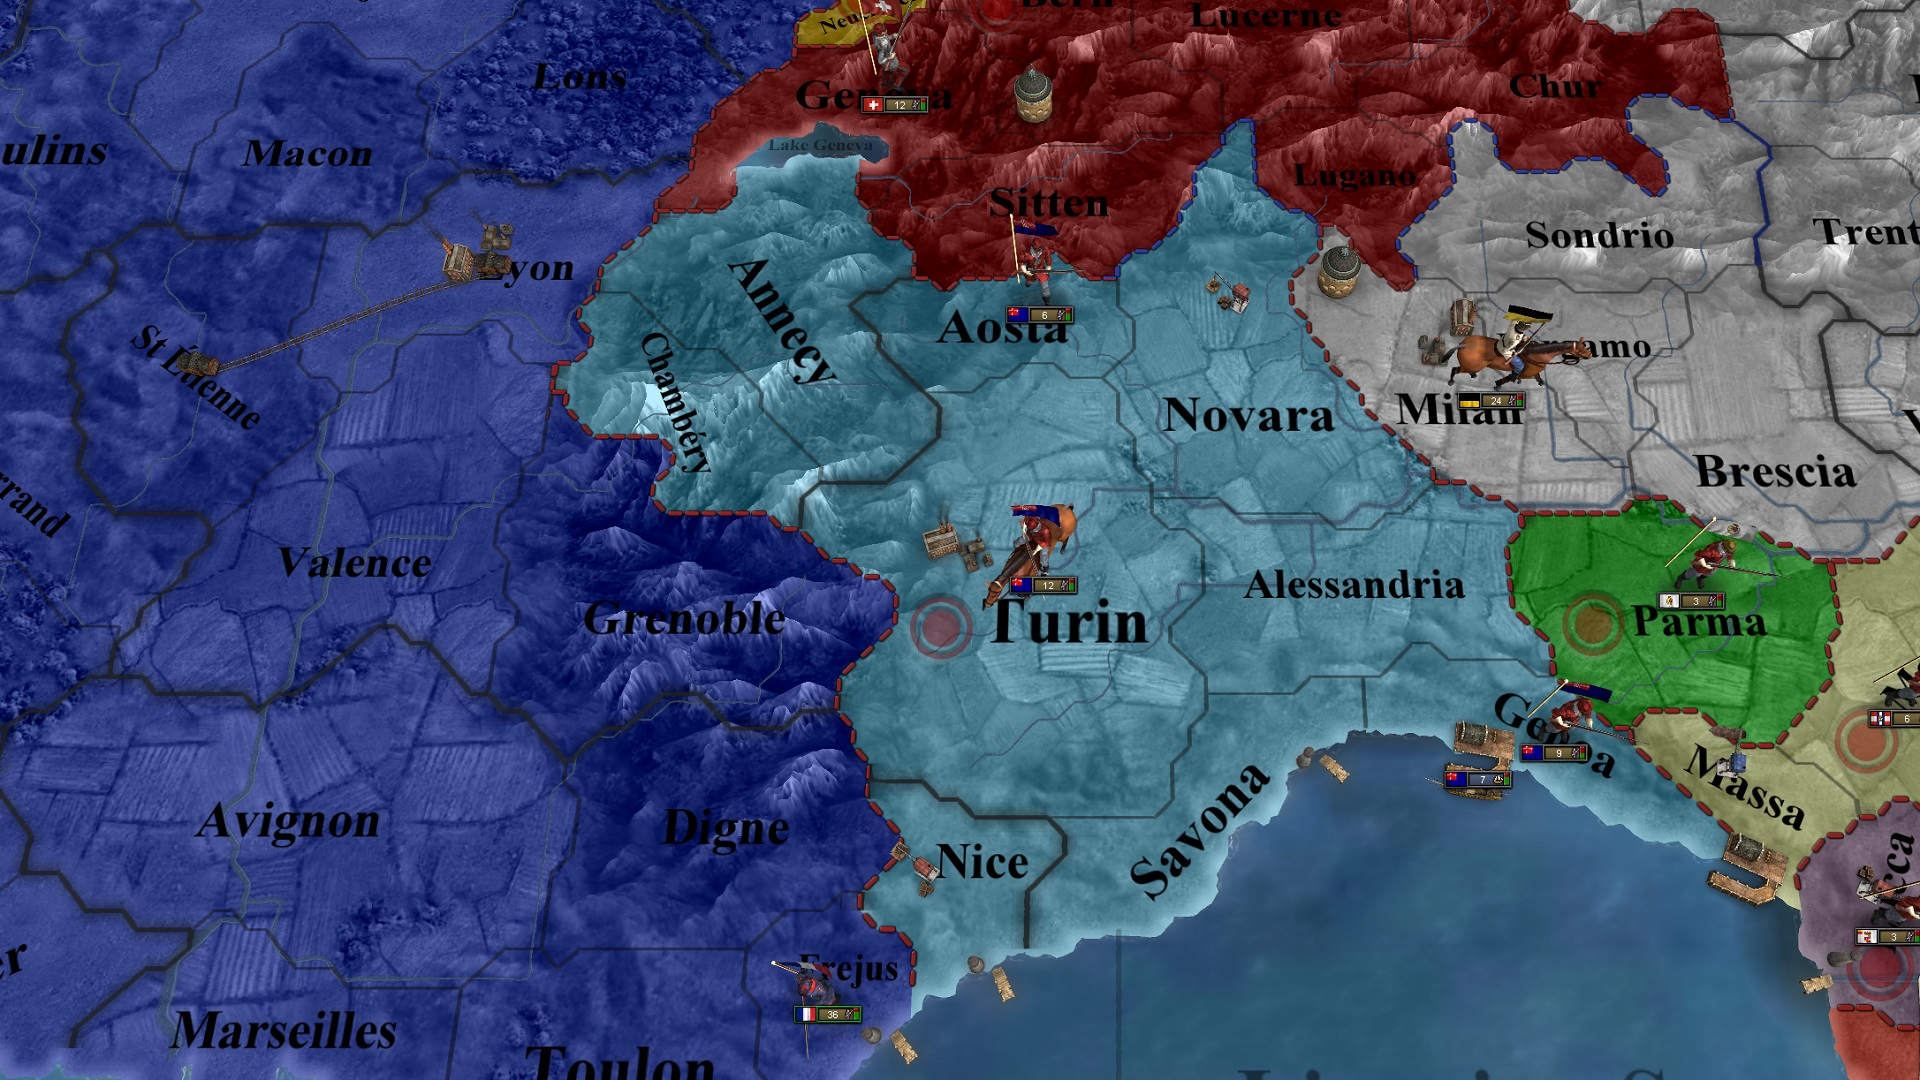 Forget Victoria 3, this Victoria 2 mod can give you an (almost) 3D map